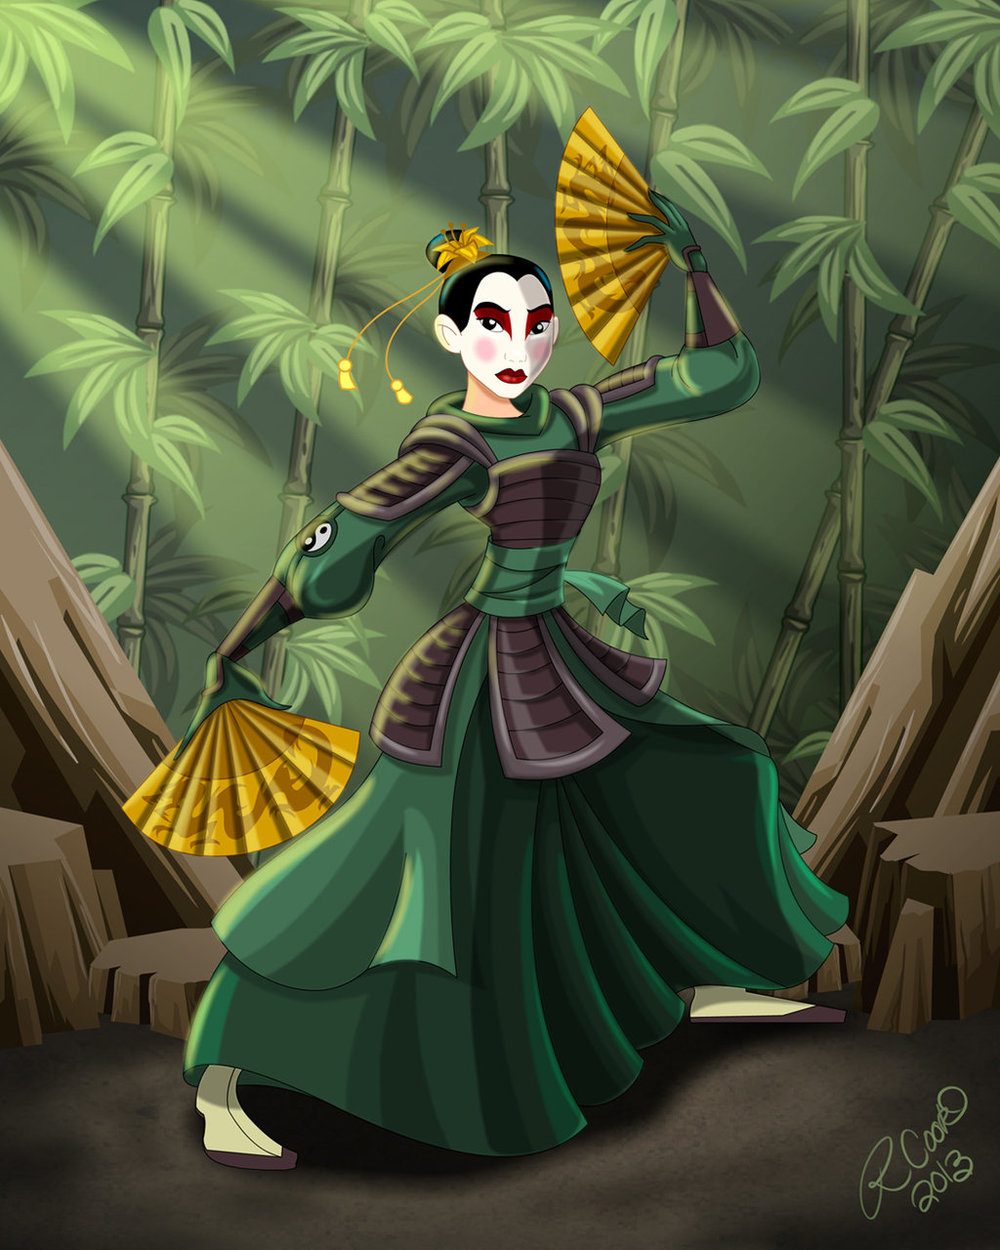 mulan_of_the_kyoshi_warriors_by_racookie3-d69d21l.jpg